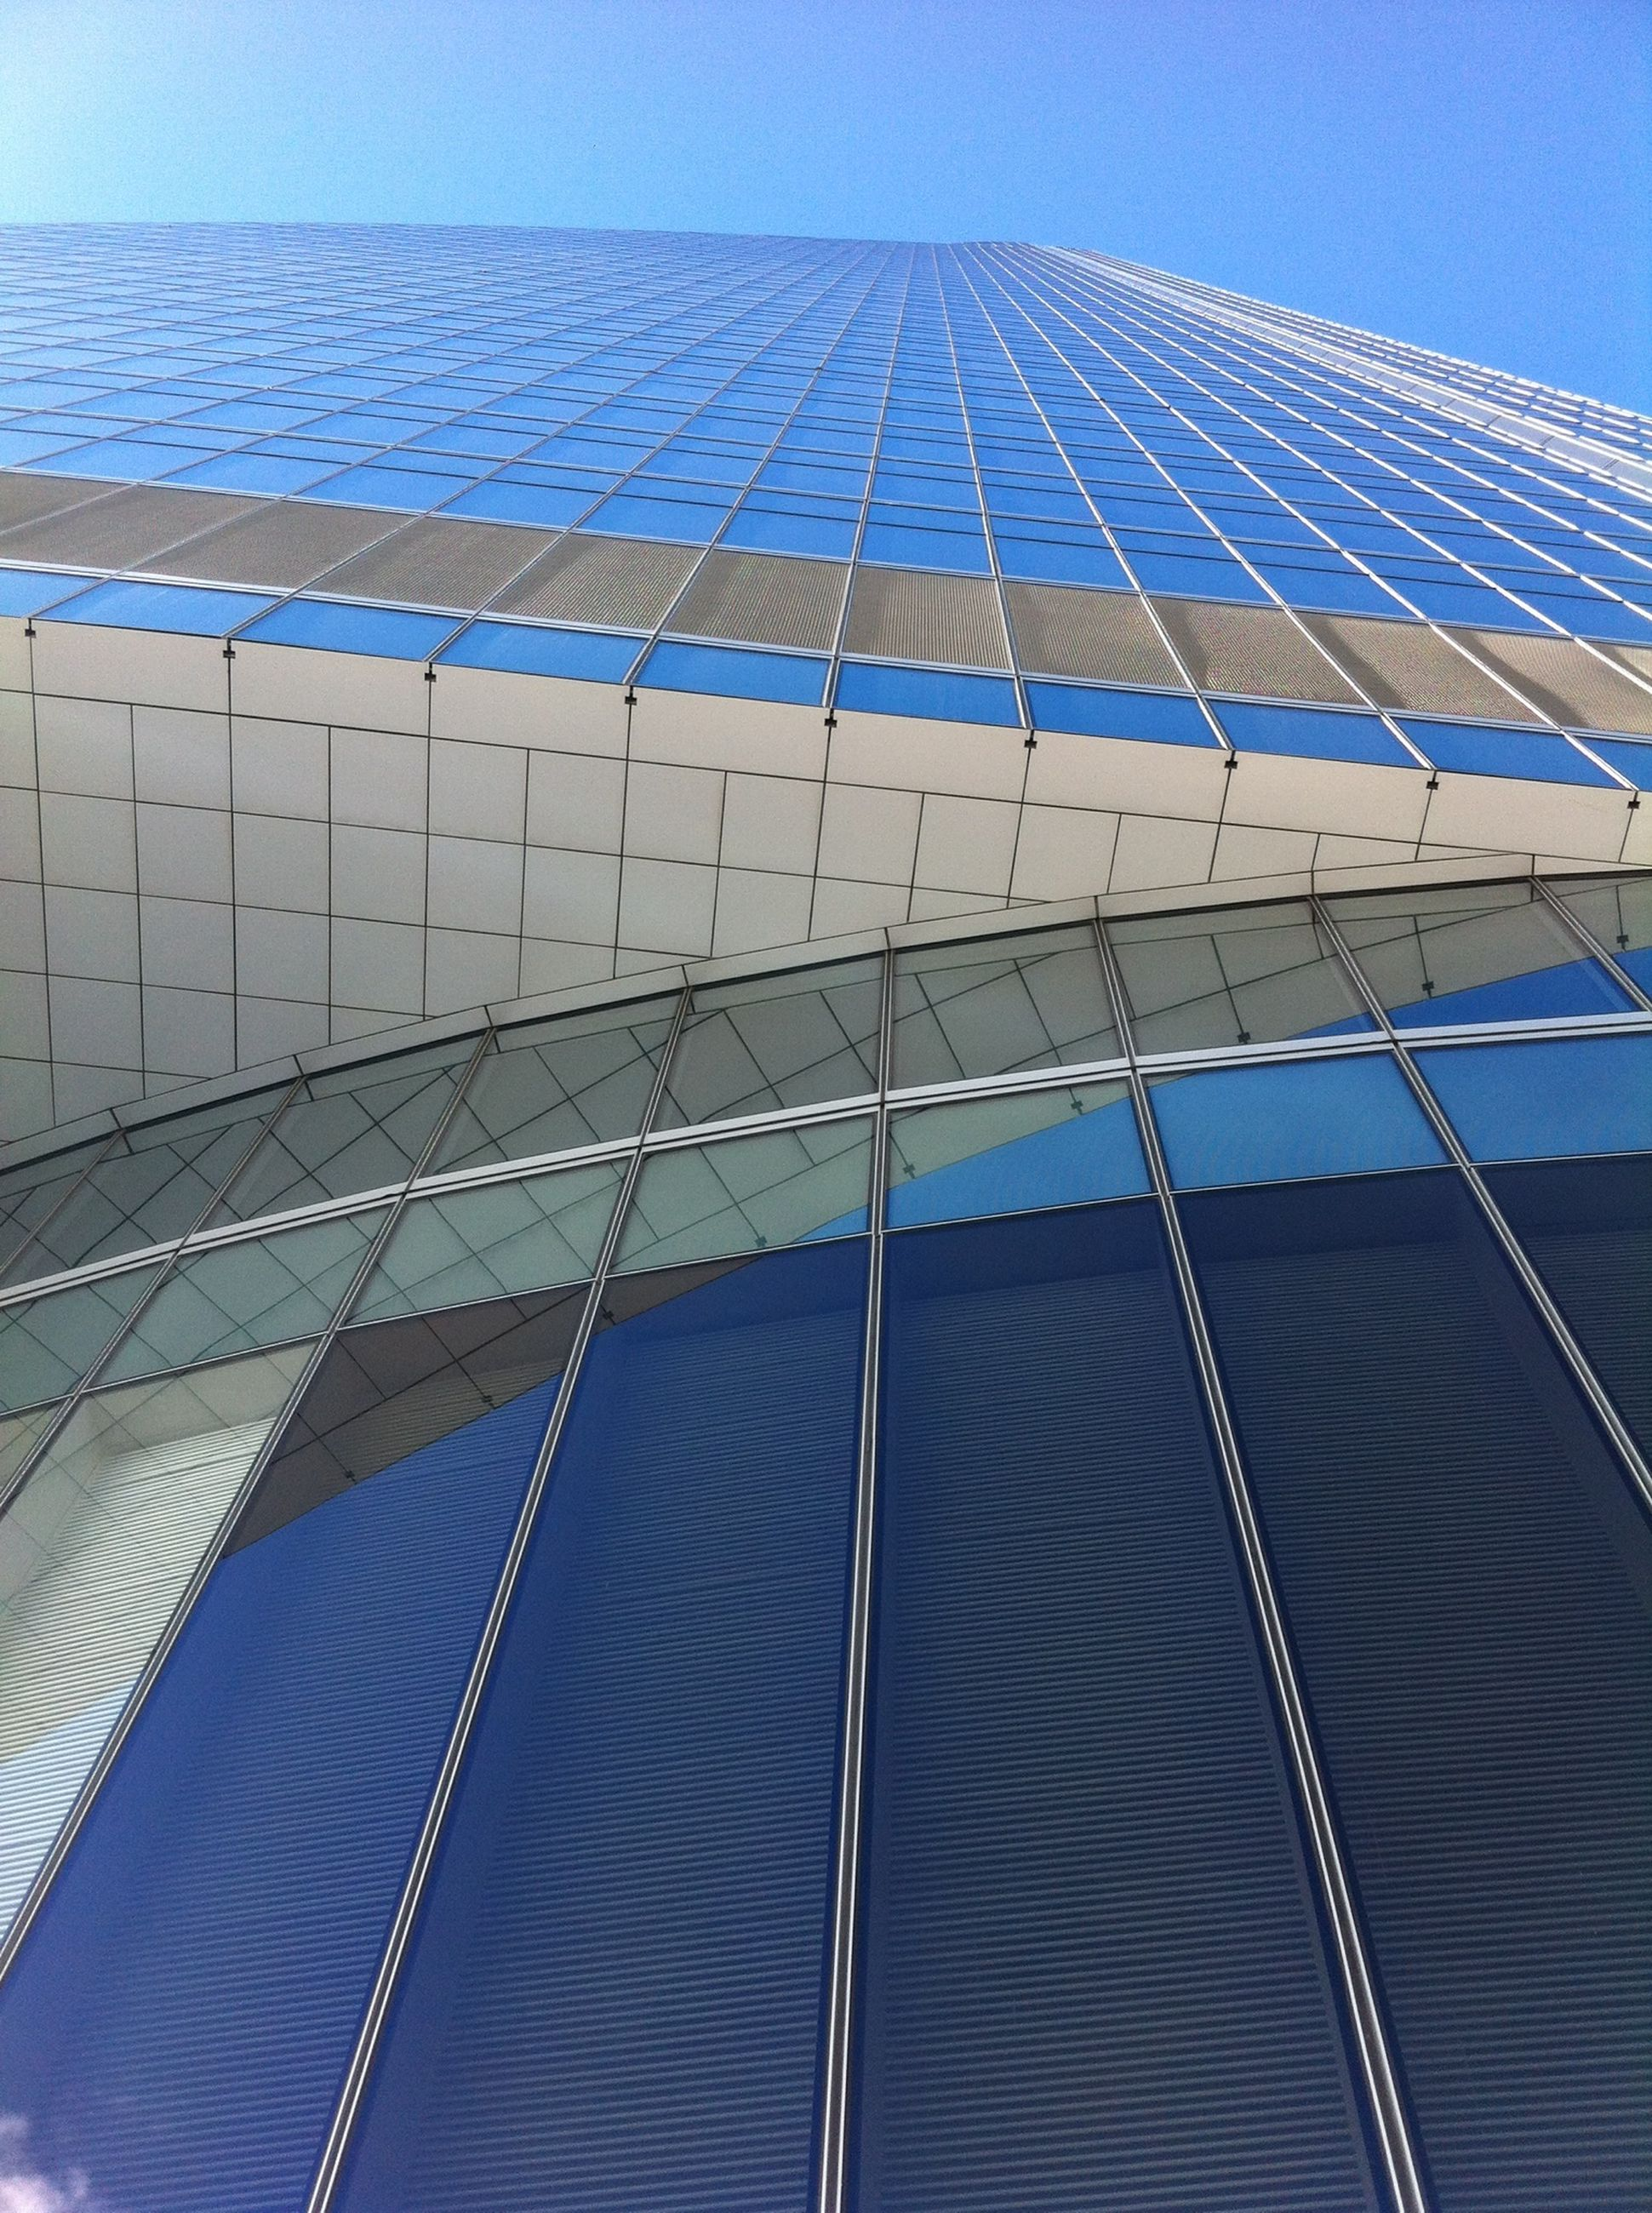 low angle view, blue, built structure, pattern, architecture, modern, building exterior, clear sky, sky, day, outdoors, sunlight, office building, skyscraper, design, city, diminishing perspective, repetition, tall - high, part of